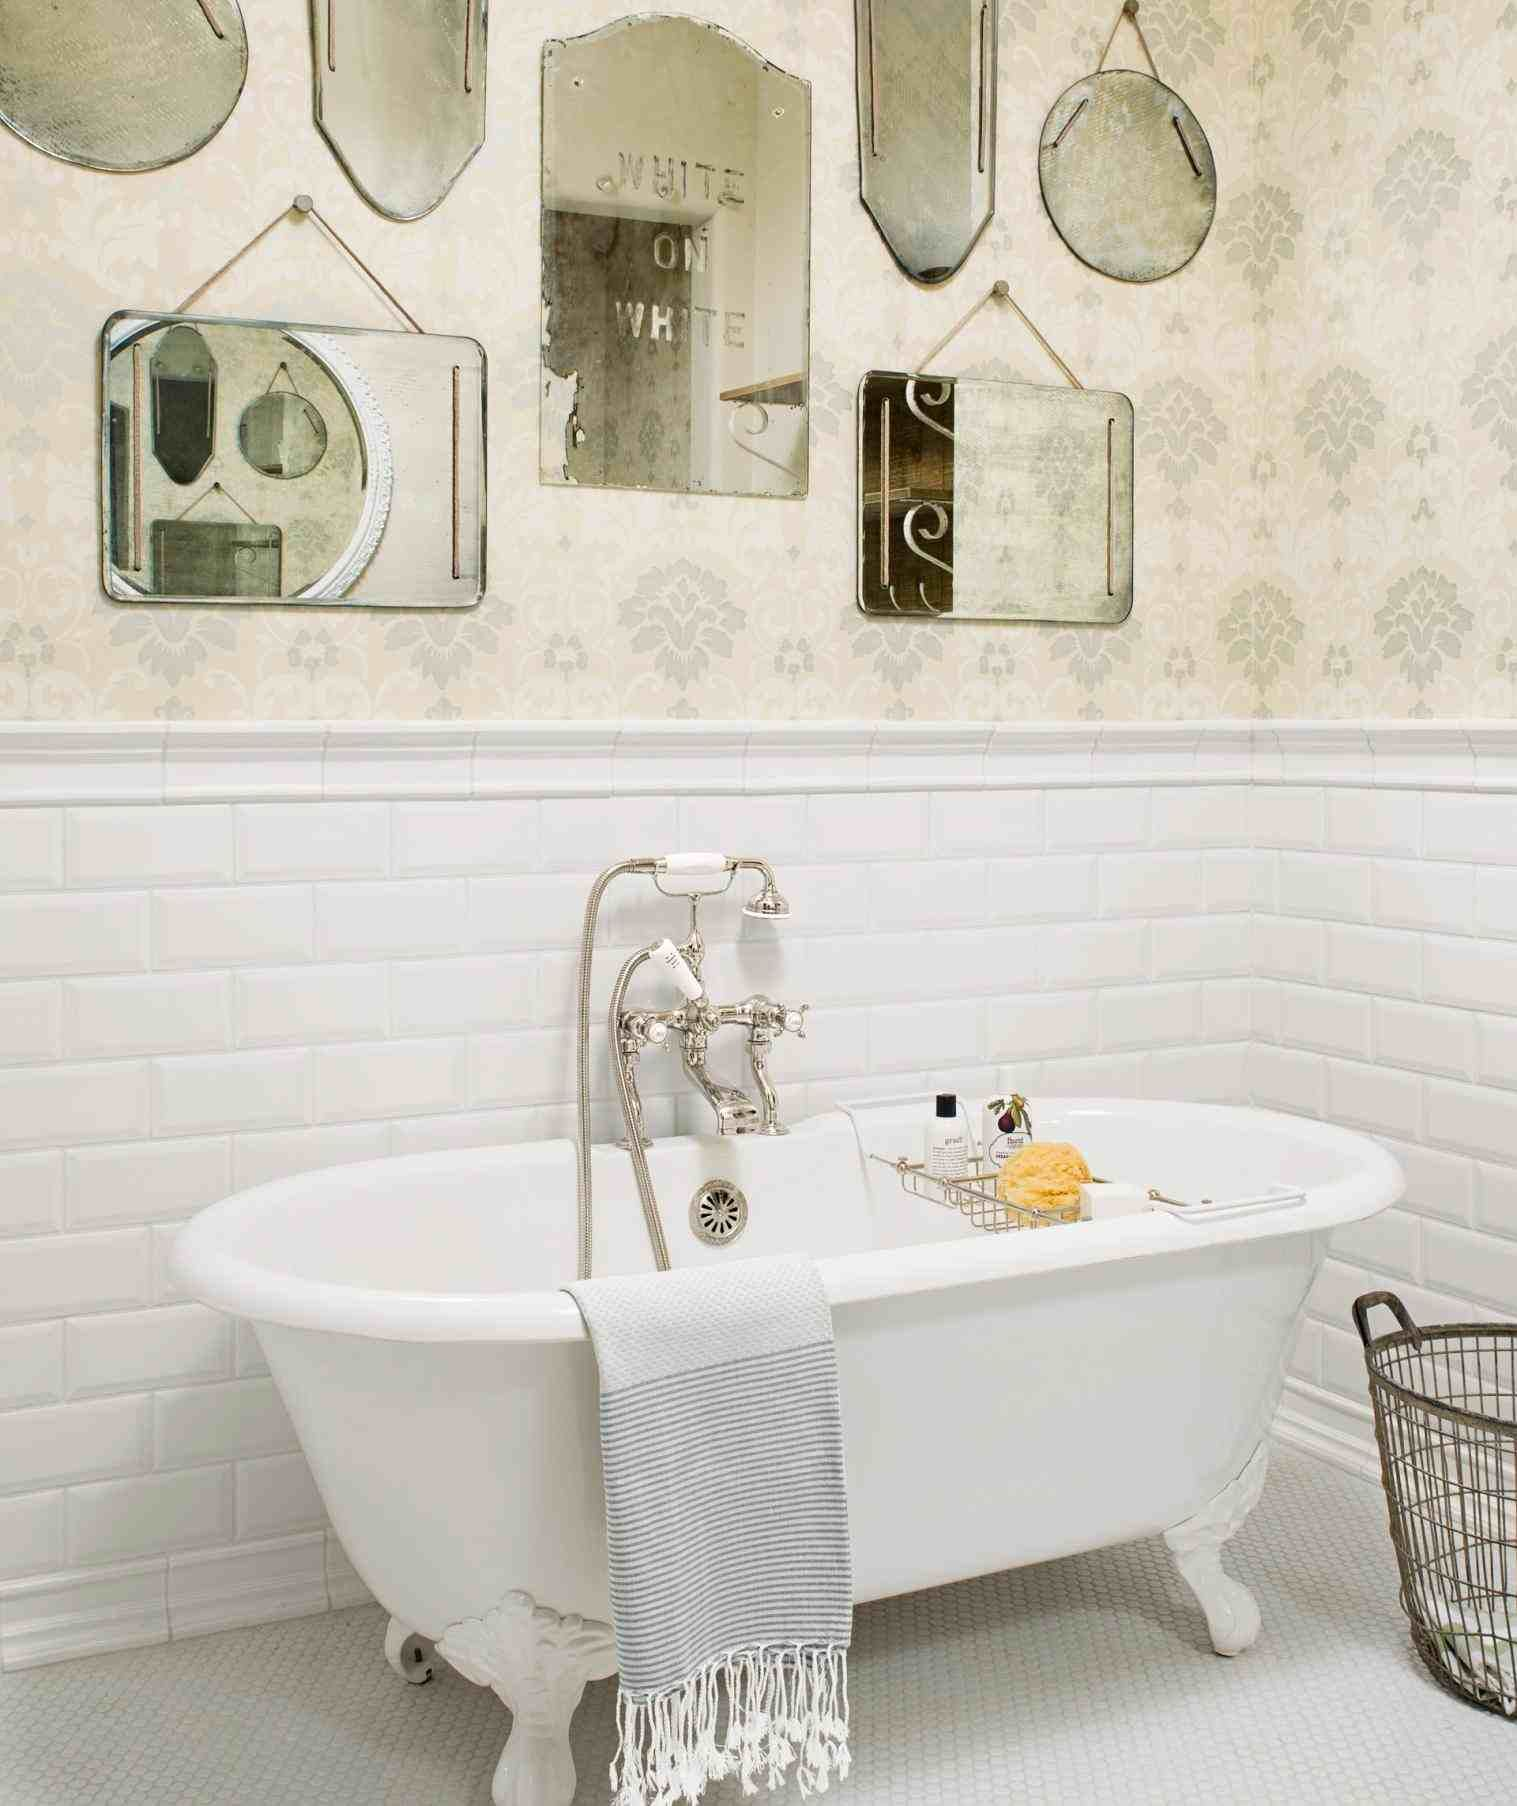 This bathroom set ideas for apartments - living room : small living ...